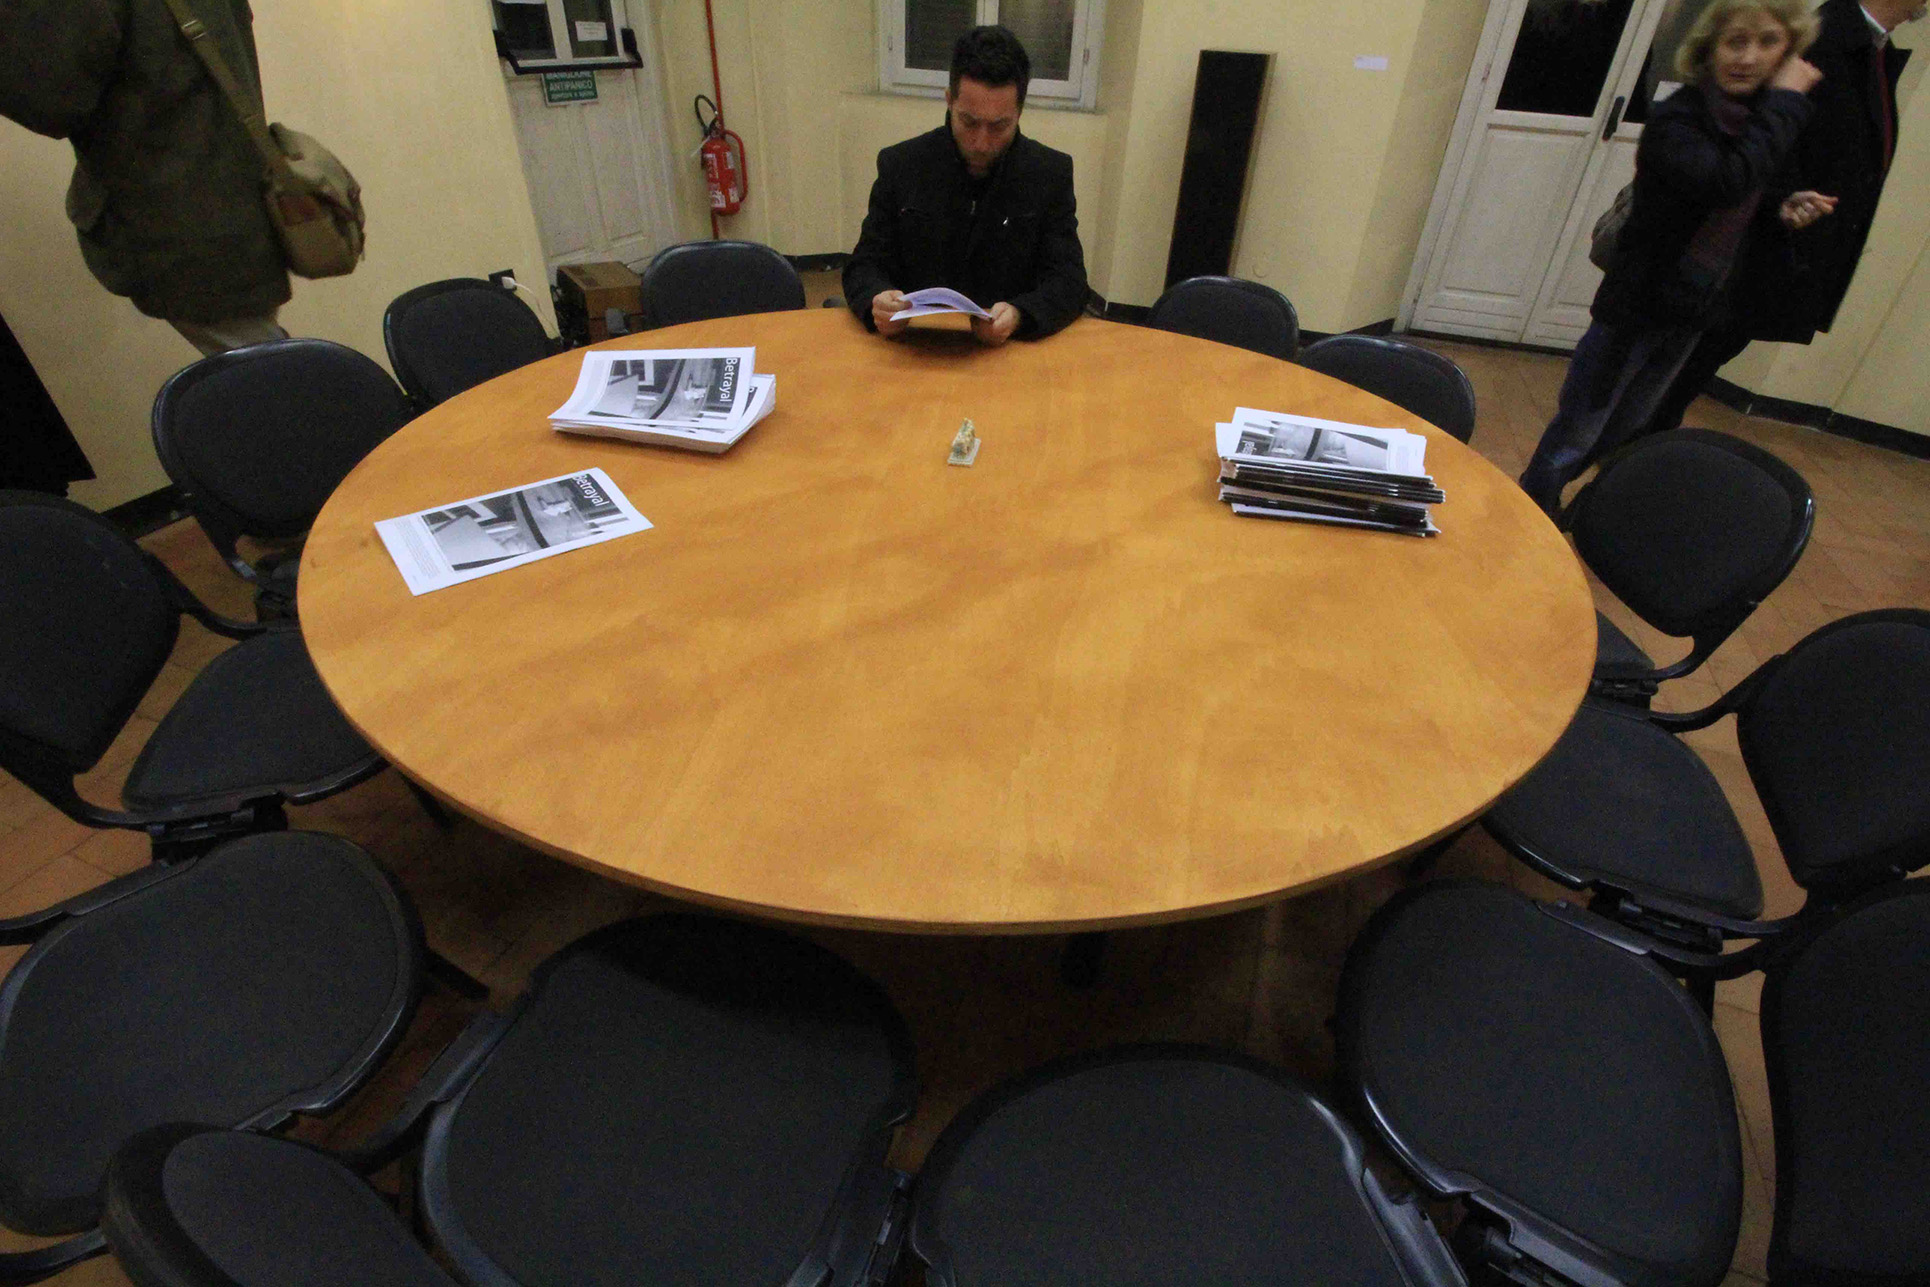 Betrayal, soundinstallation with random sentences from 13 interviews, round table and 13 chairs (Foto: Paolo Bergmann)